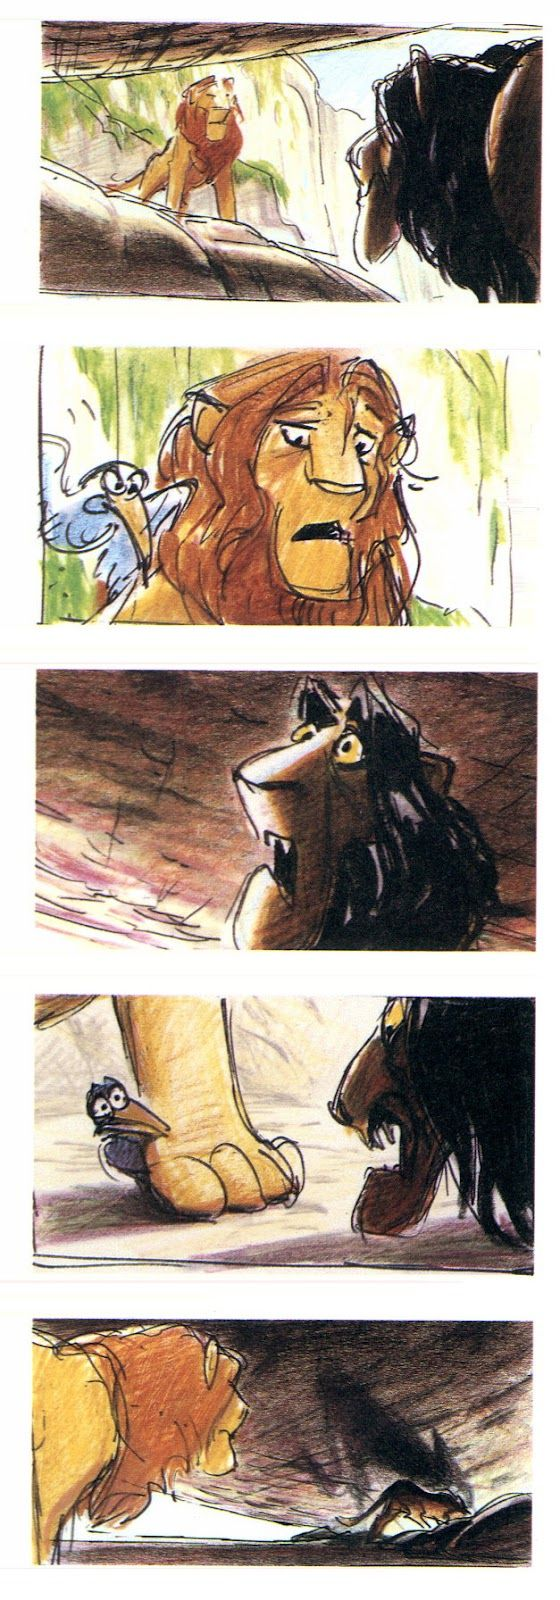 Living Lines Library: The Lion King (1994) - Storyboards